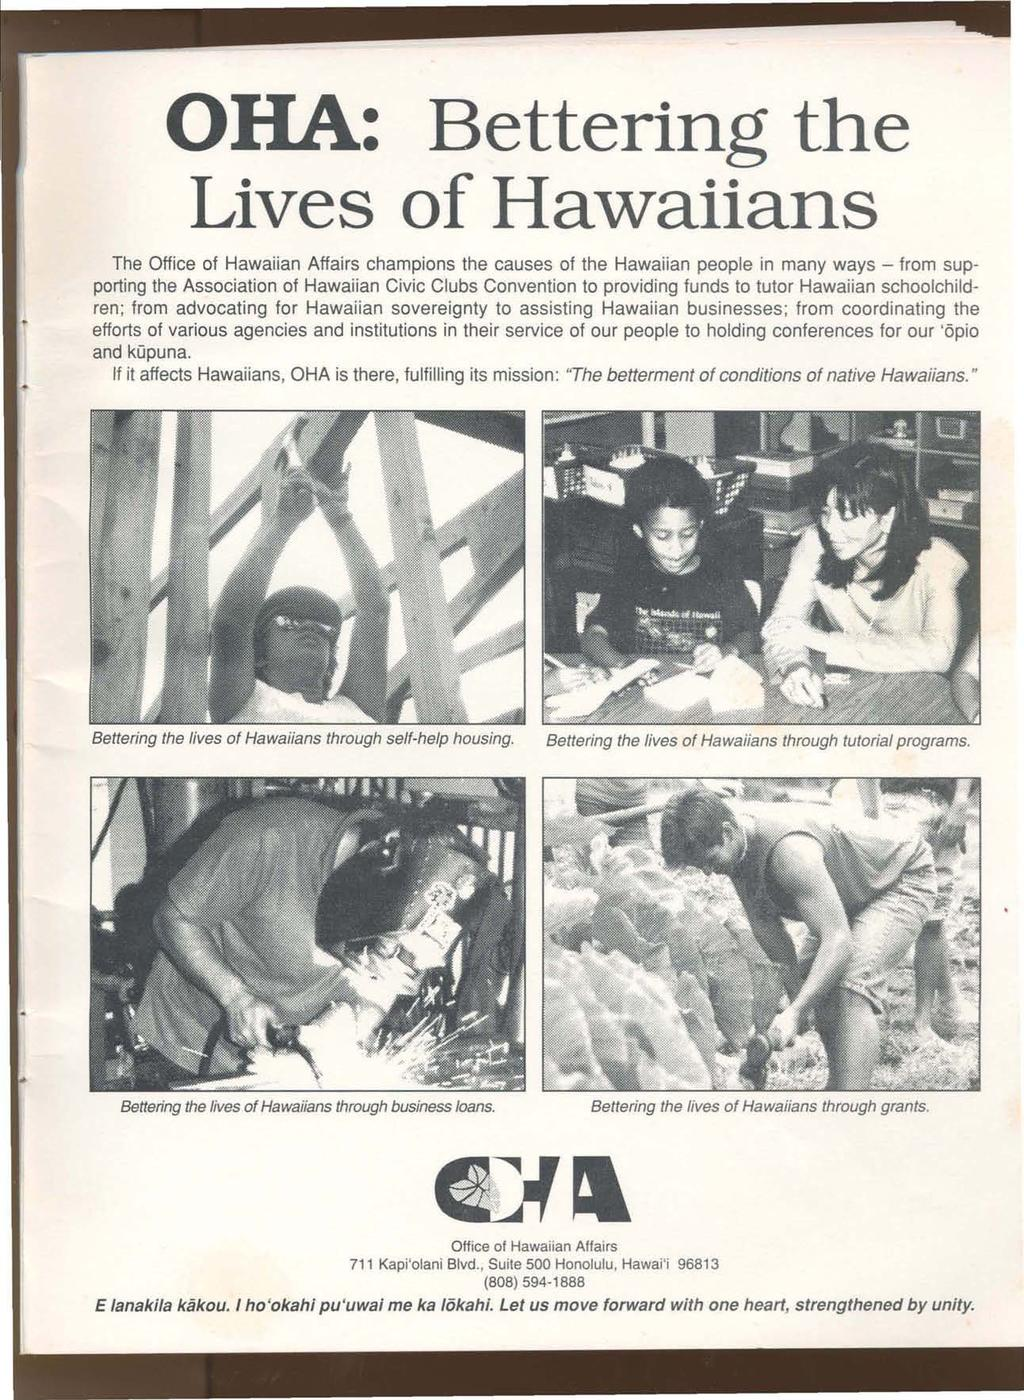 OHA: Bettering the Lives of Hawaiians The Office of Hawaiian Affairs champions the causes of the Hawaiian people in many ways - from supporting the Association of Hawaiian Civic Clubs Convention to